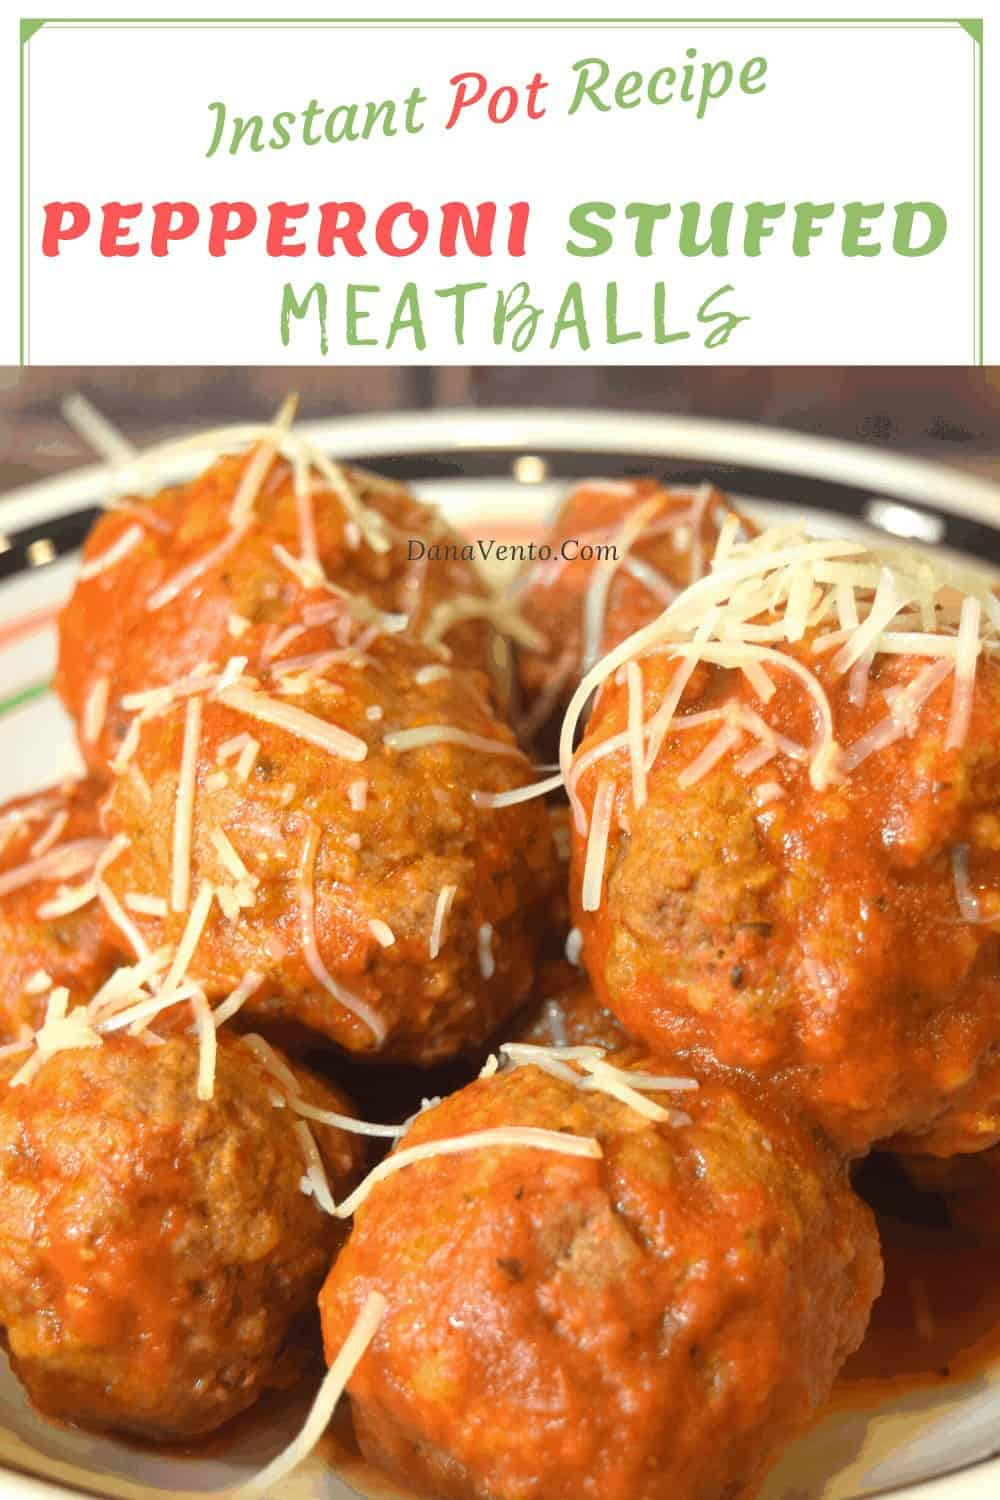 Pepperoni Stuffed Meatball up close with cheese for serving